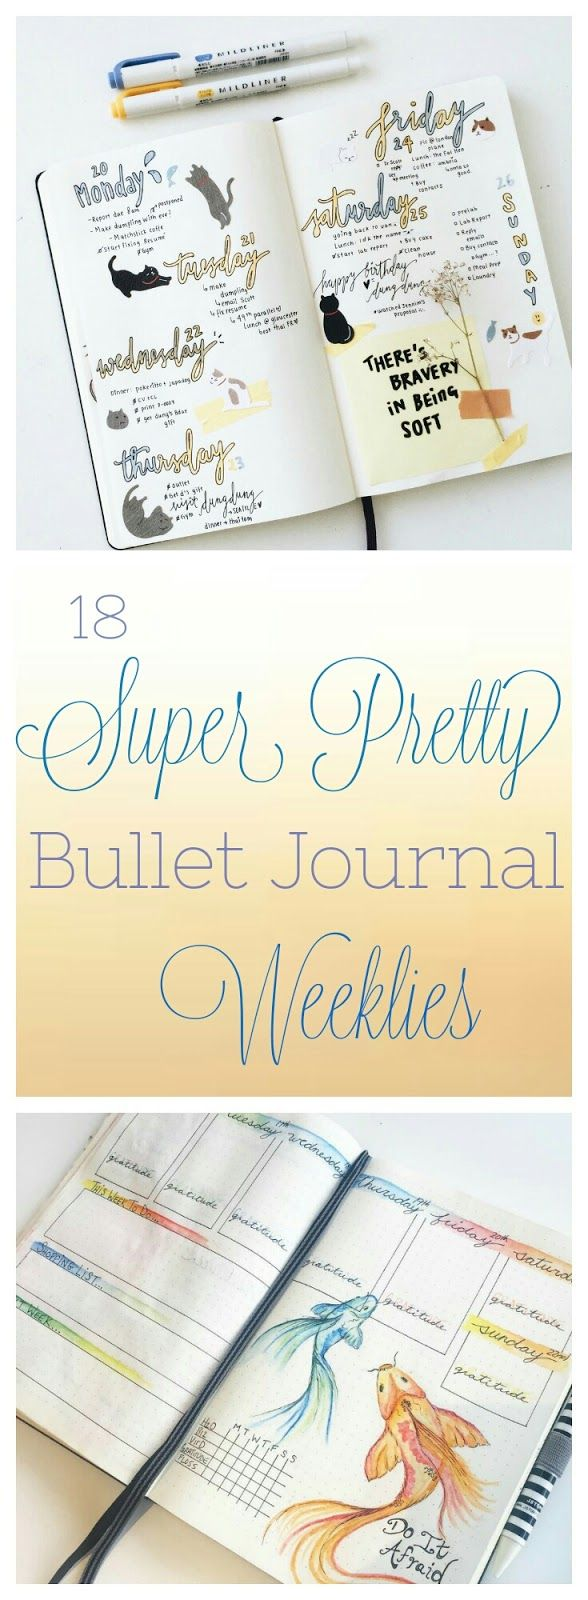 18 Super Pretty Bullet Journal Weeklies. Beautiful Inspiration for your weekly layouts for journals, notebooks, or planners.